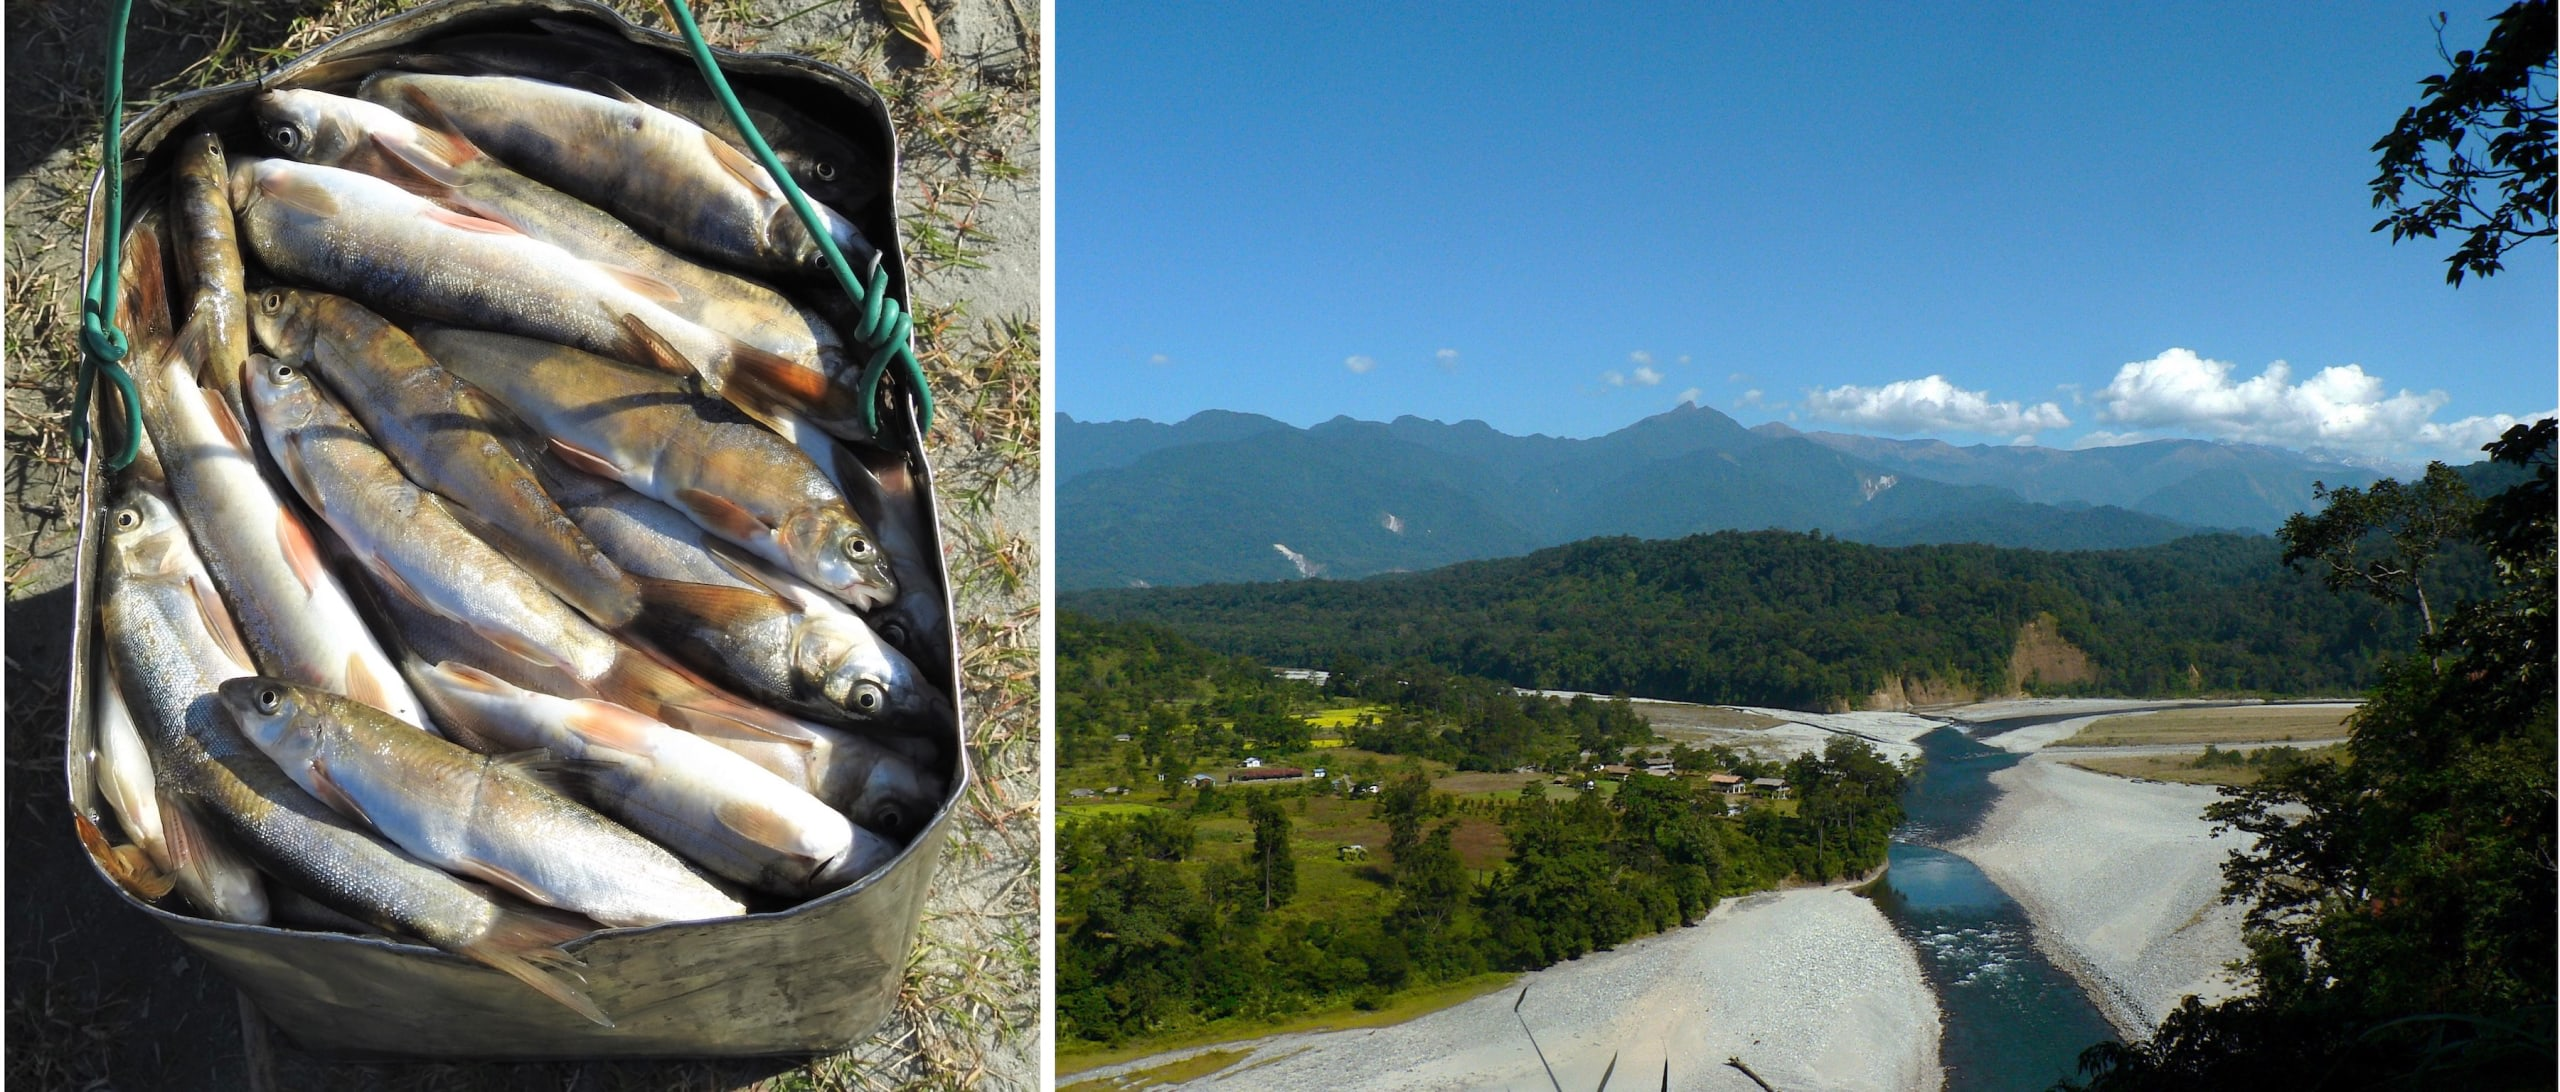 (Left) Fishers in Arunachal Pradesh and Assam have slowly moved away from traditional forms of fishing and some have adapted destructive ways to fish, which not only kill masses of fishes but also most of the living creatures in a section of the river. Using chemicals such as bleach causes tremendous damage several kilometres downstream of the point of application.  (Right) Clearing riverbanks and beds of sand and boulders can have a negative impact on the ecology of the river. The rivers of Arunachal Pradesh hold more than 65 species of riverine birds including some threatened bird species that need conservation efforts to ensure that their population does not decrease further.   Photos: Rohan Menzies (left), Rohit Naniwadekar / CC BY-SA 4.0 (right)